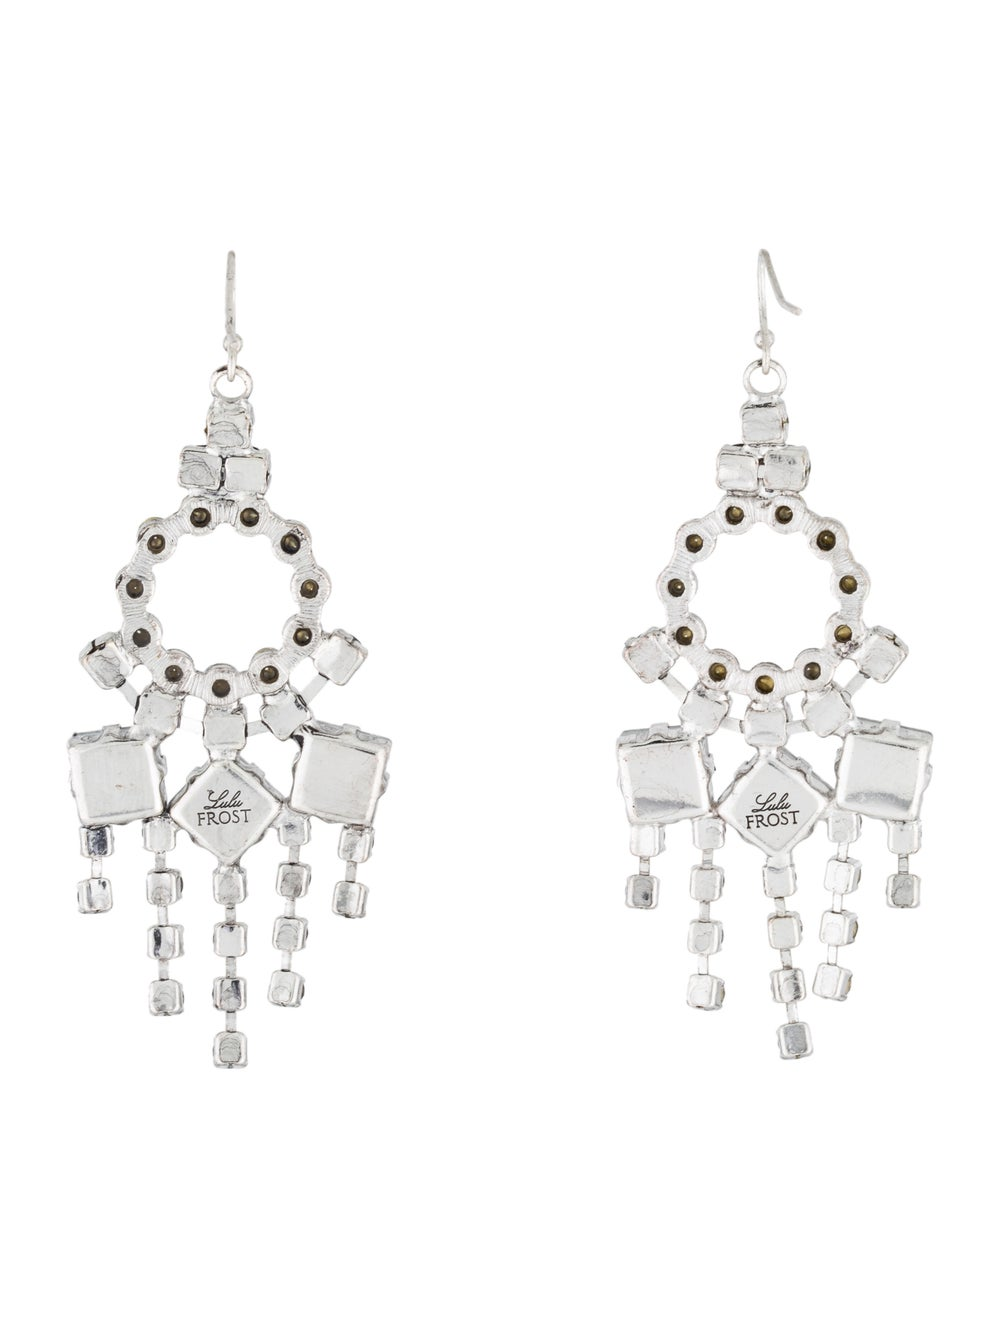 Lulu Frost Crystal Chandelier Earrings Silver - image 3